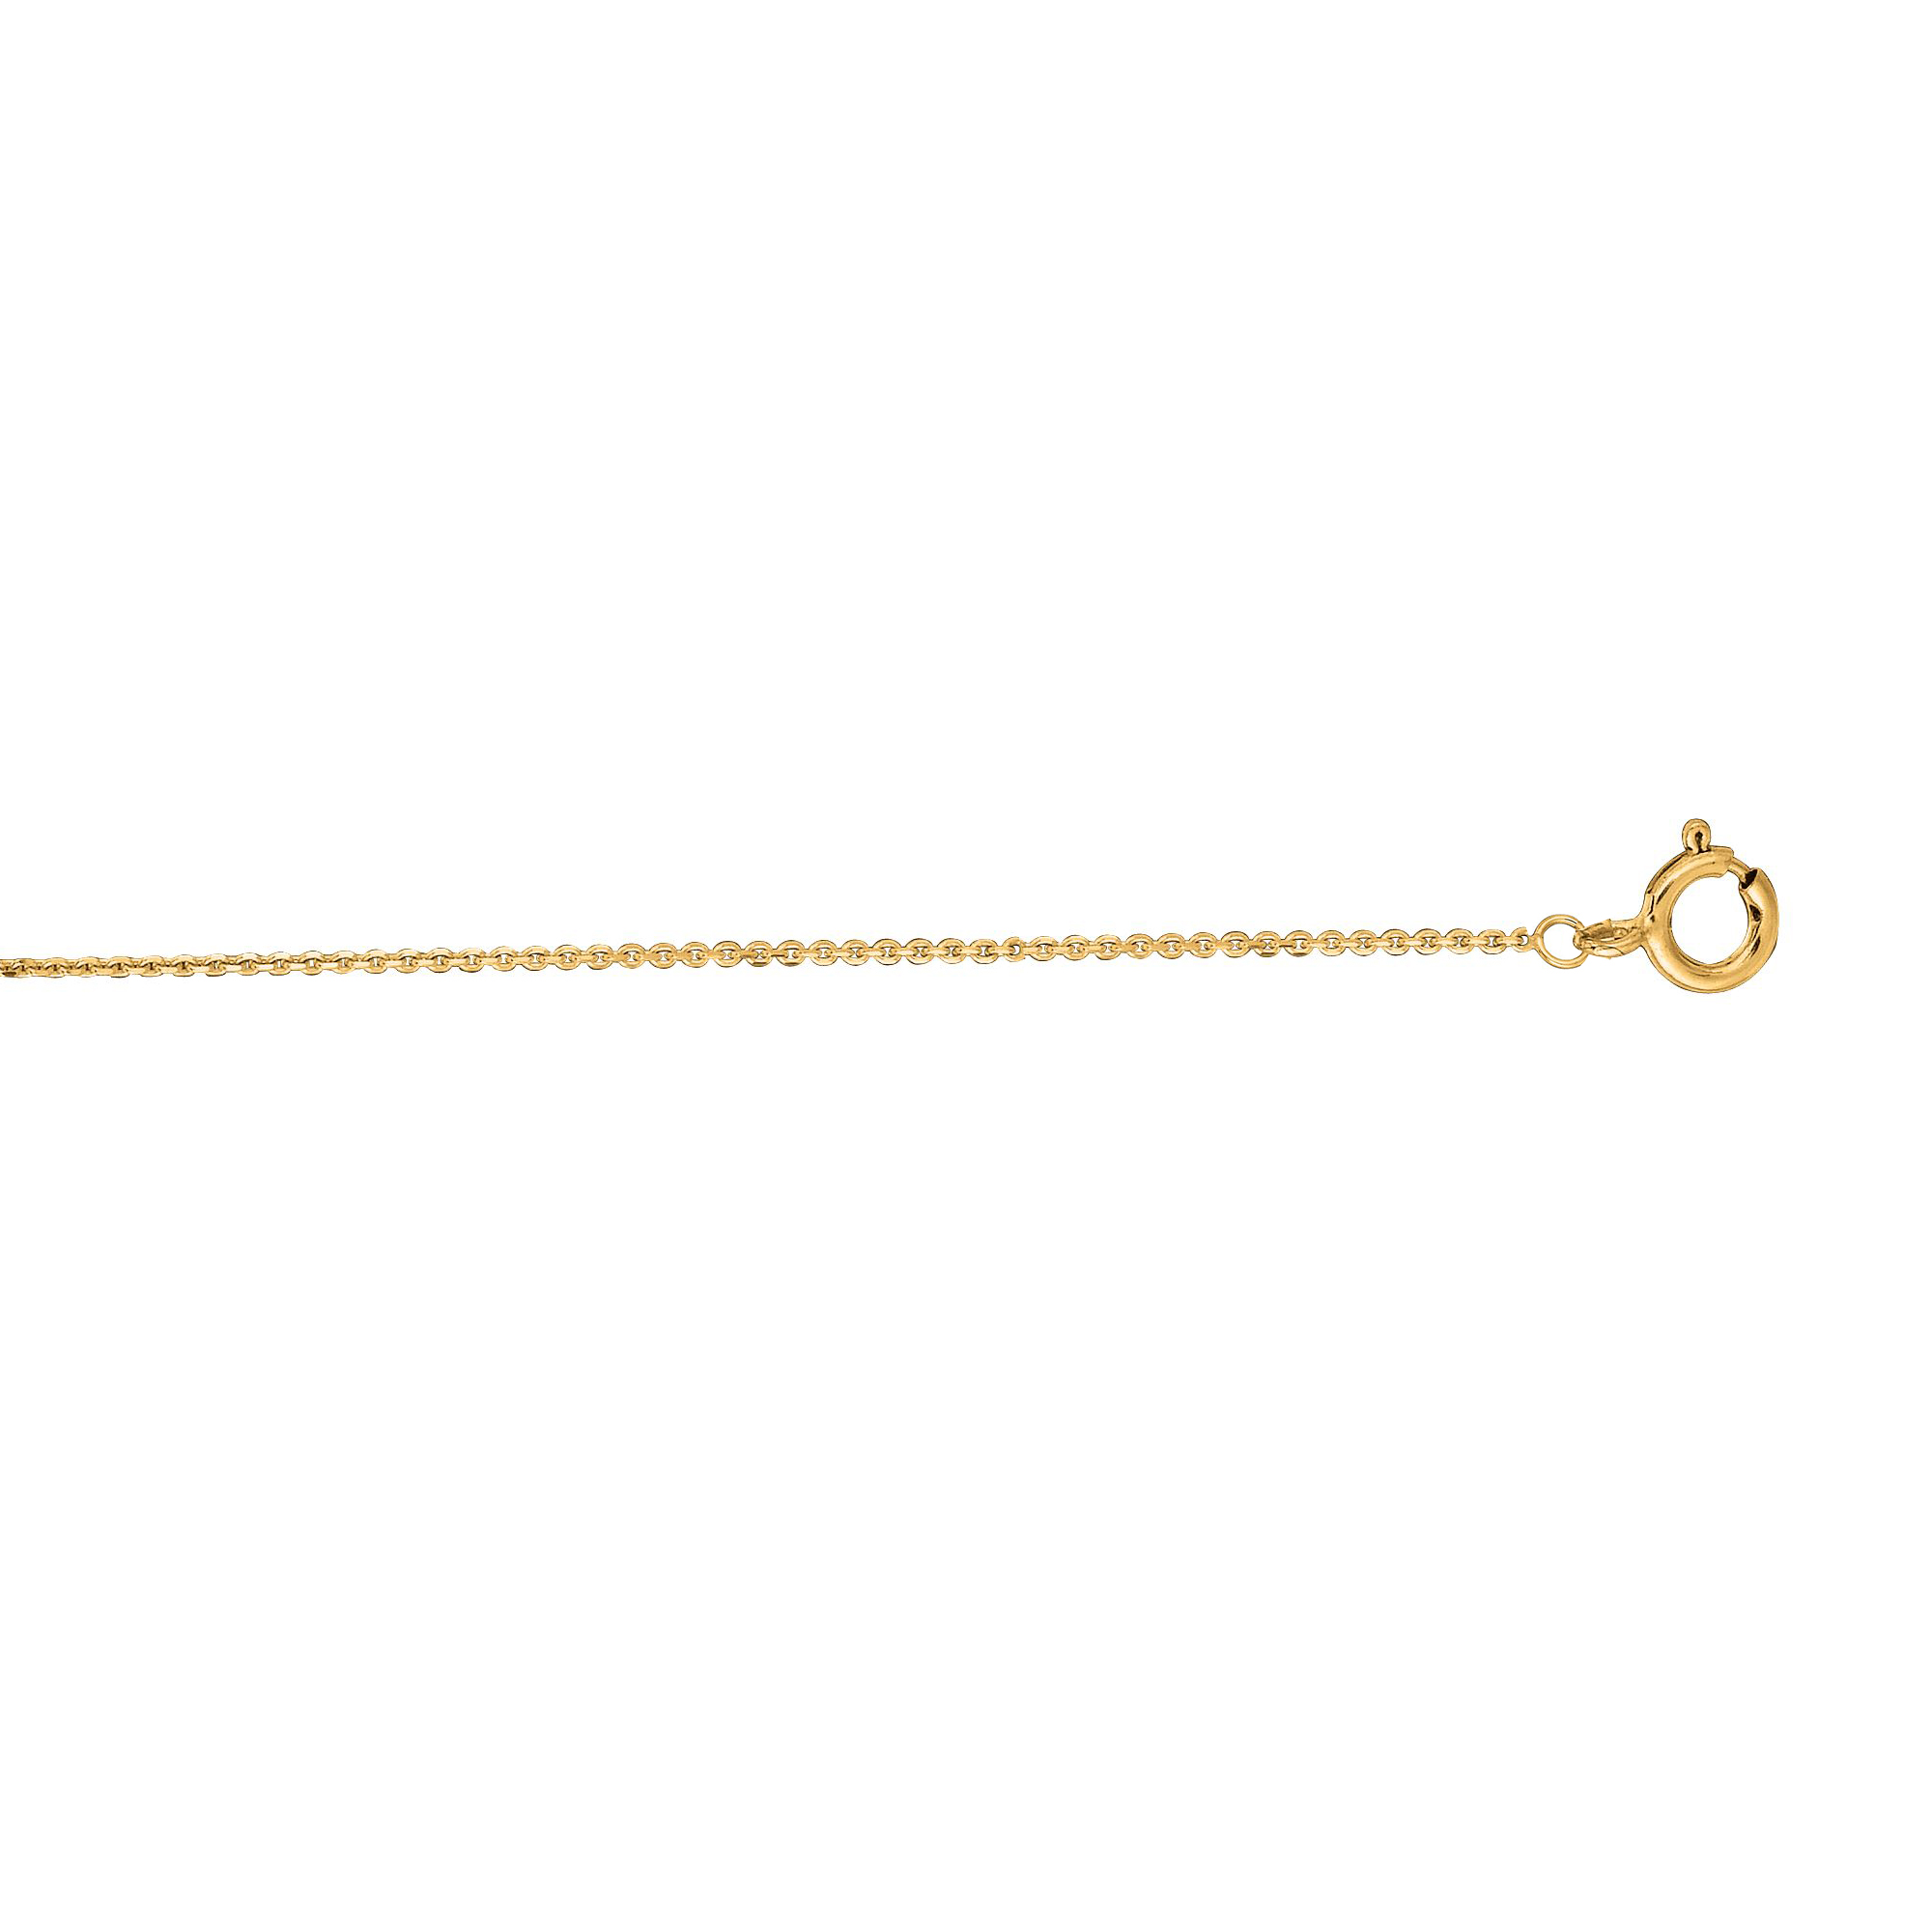 14kt Gold 20 inches Yellow Finish 0.5mm Diamond Cut Spring Ring Classic Cable Chain with Spring Ring Clasp